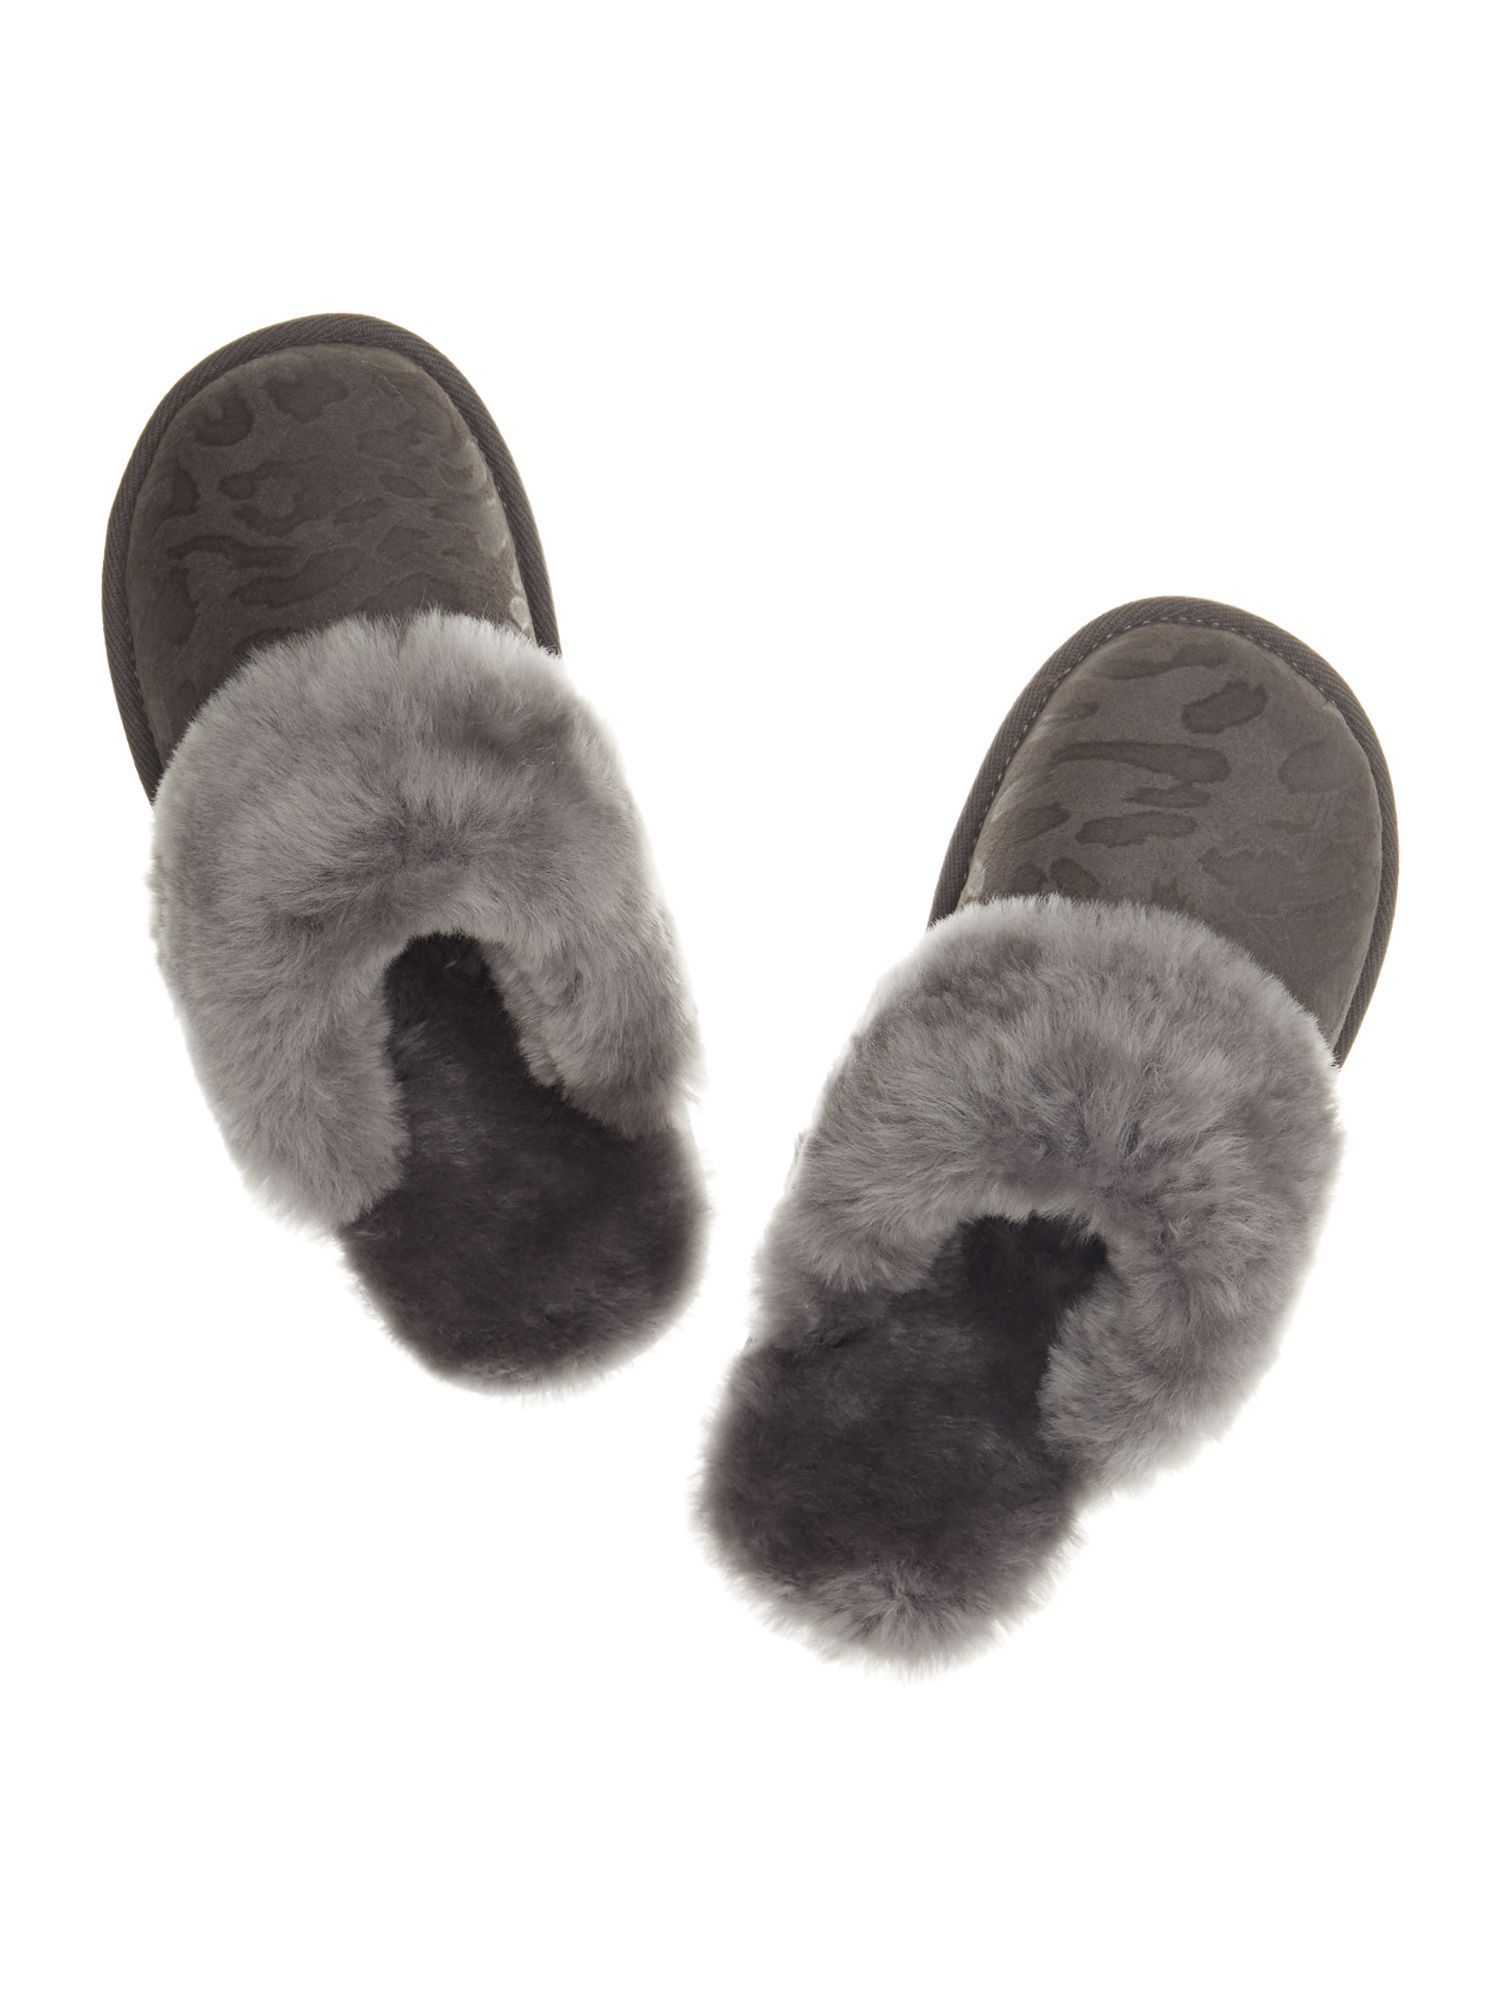 3880c39d6639a Just Sheepskin Duchess Mule | Ellie's Merry gift guide by House of ...